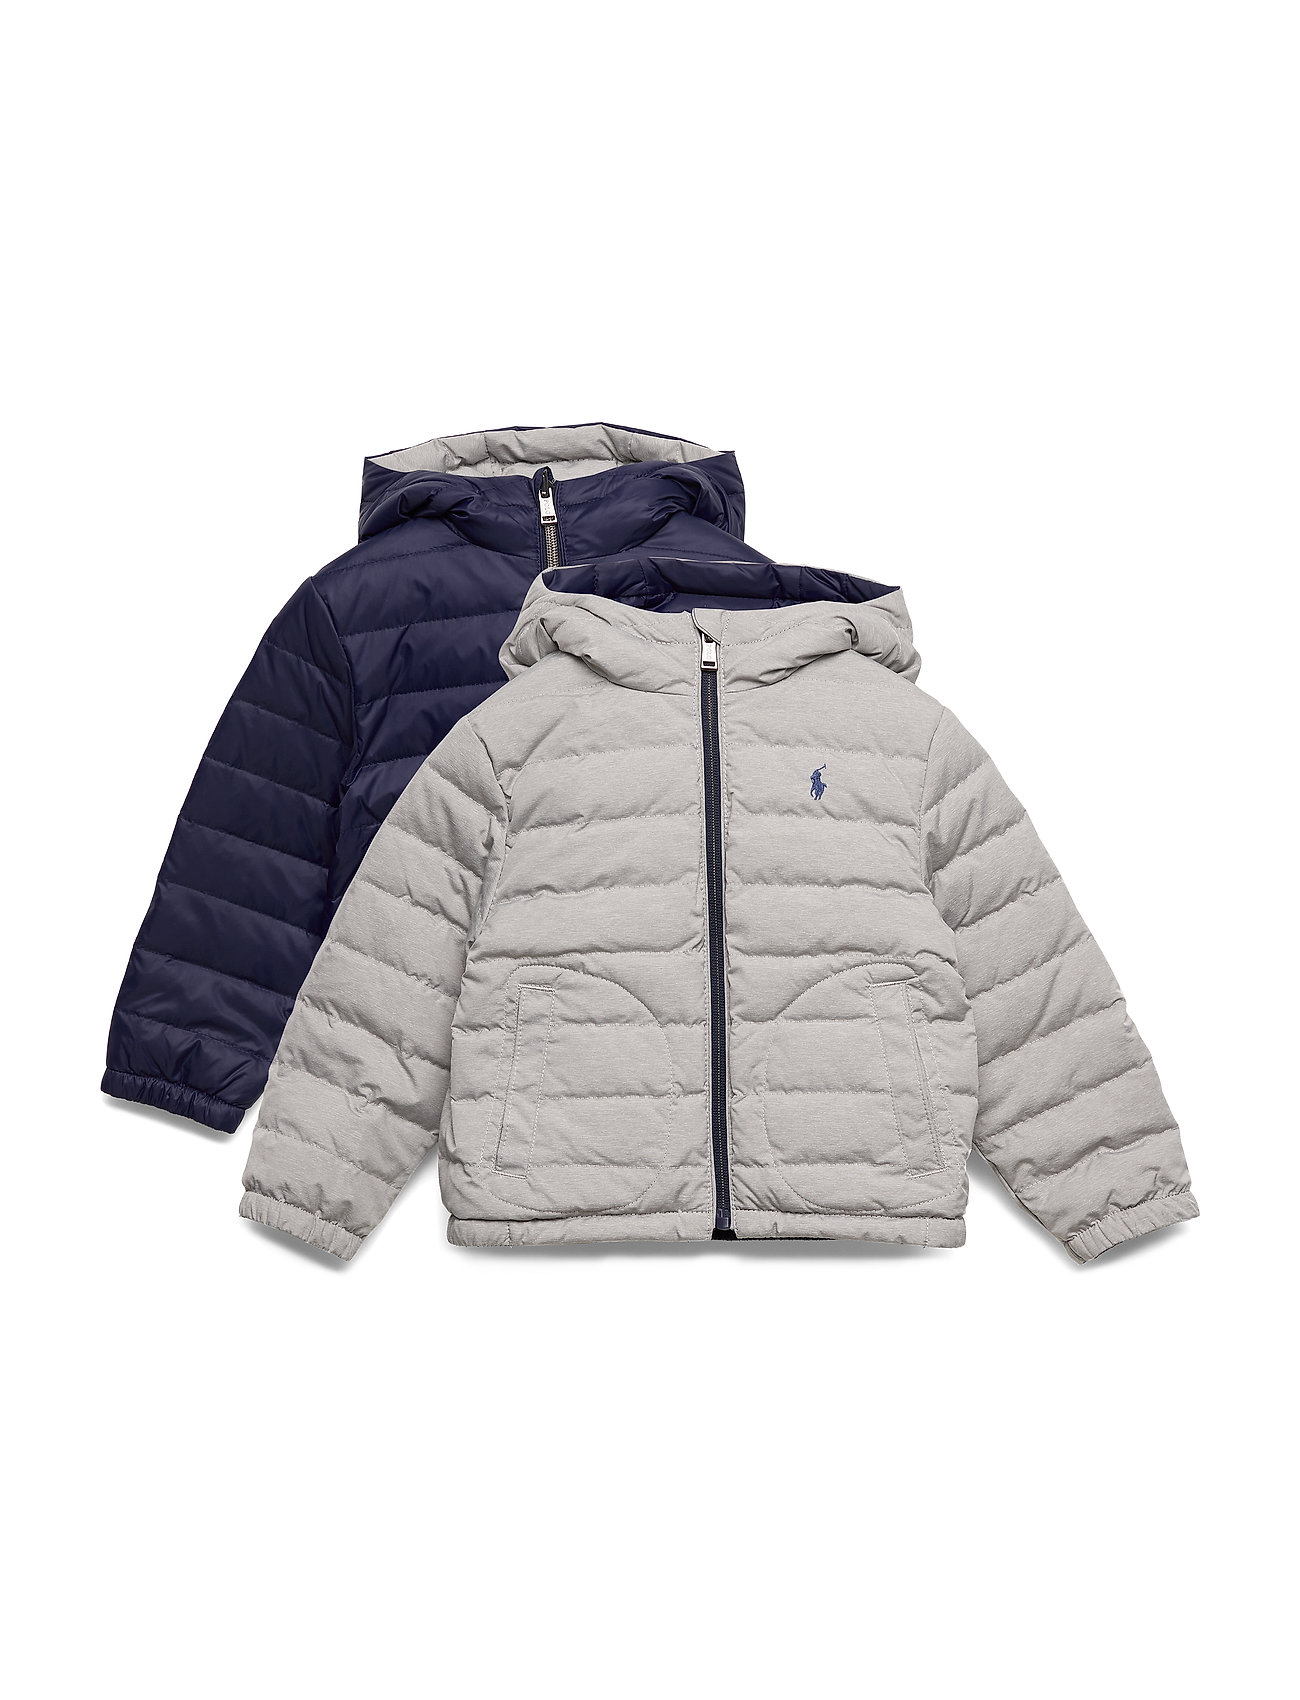 Ralph Lauren Kids Reversible Quilted Down Jacket - FRENCH NAVY/GREY